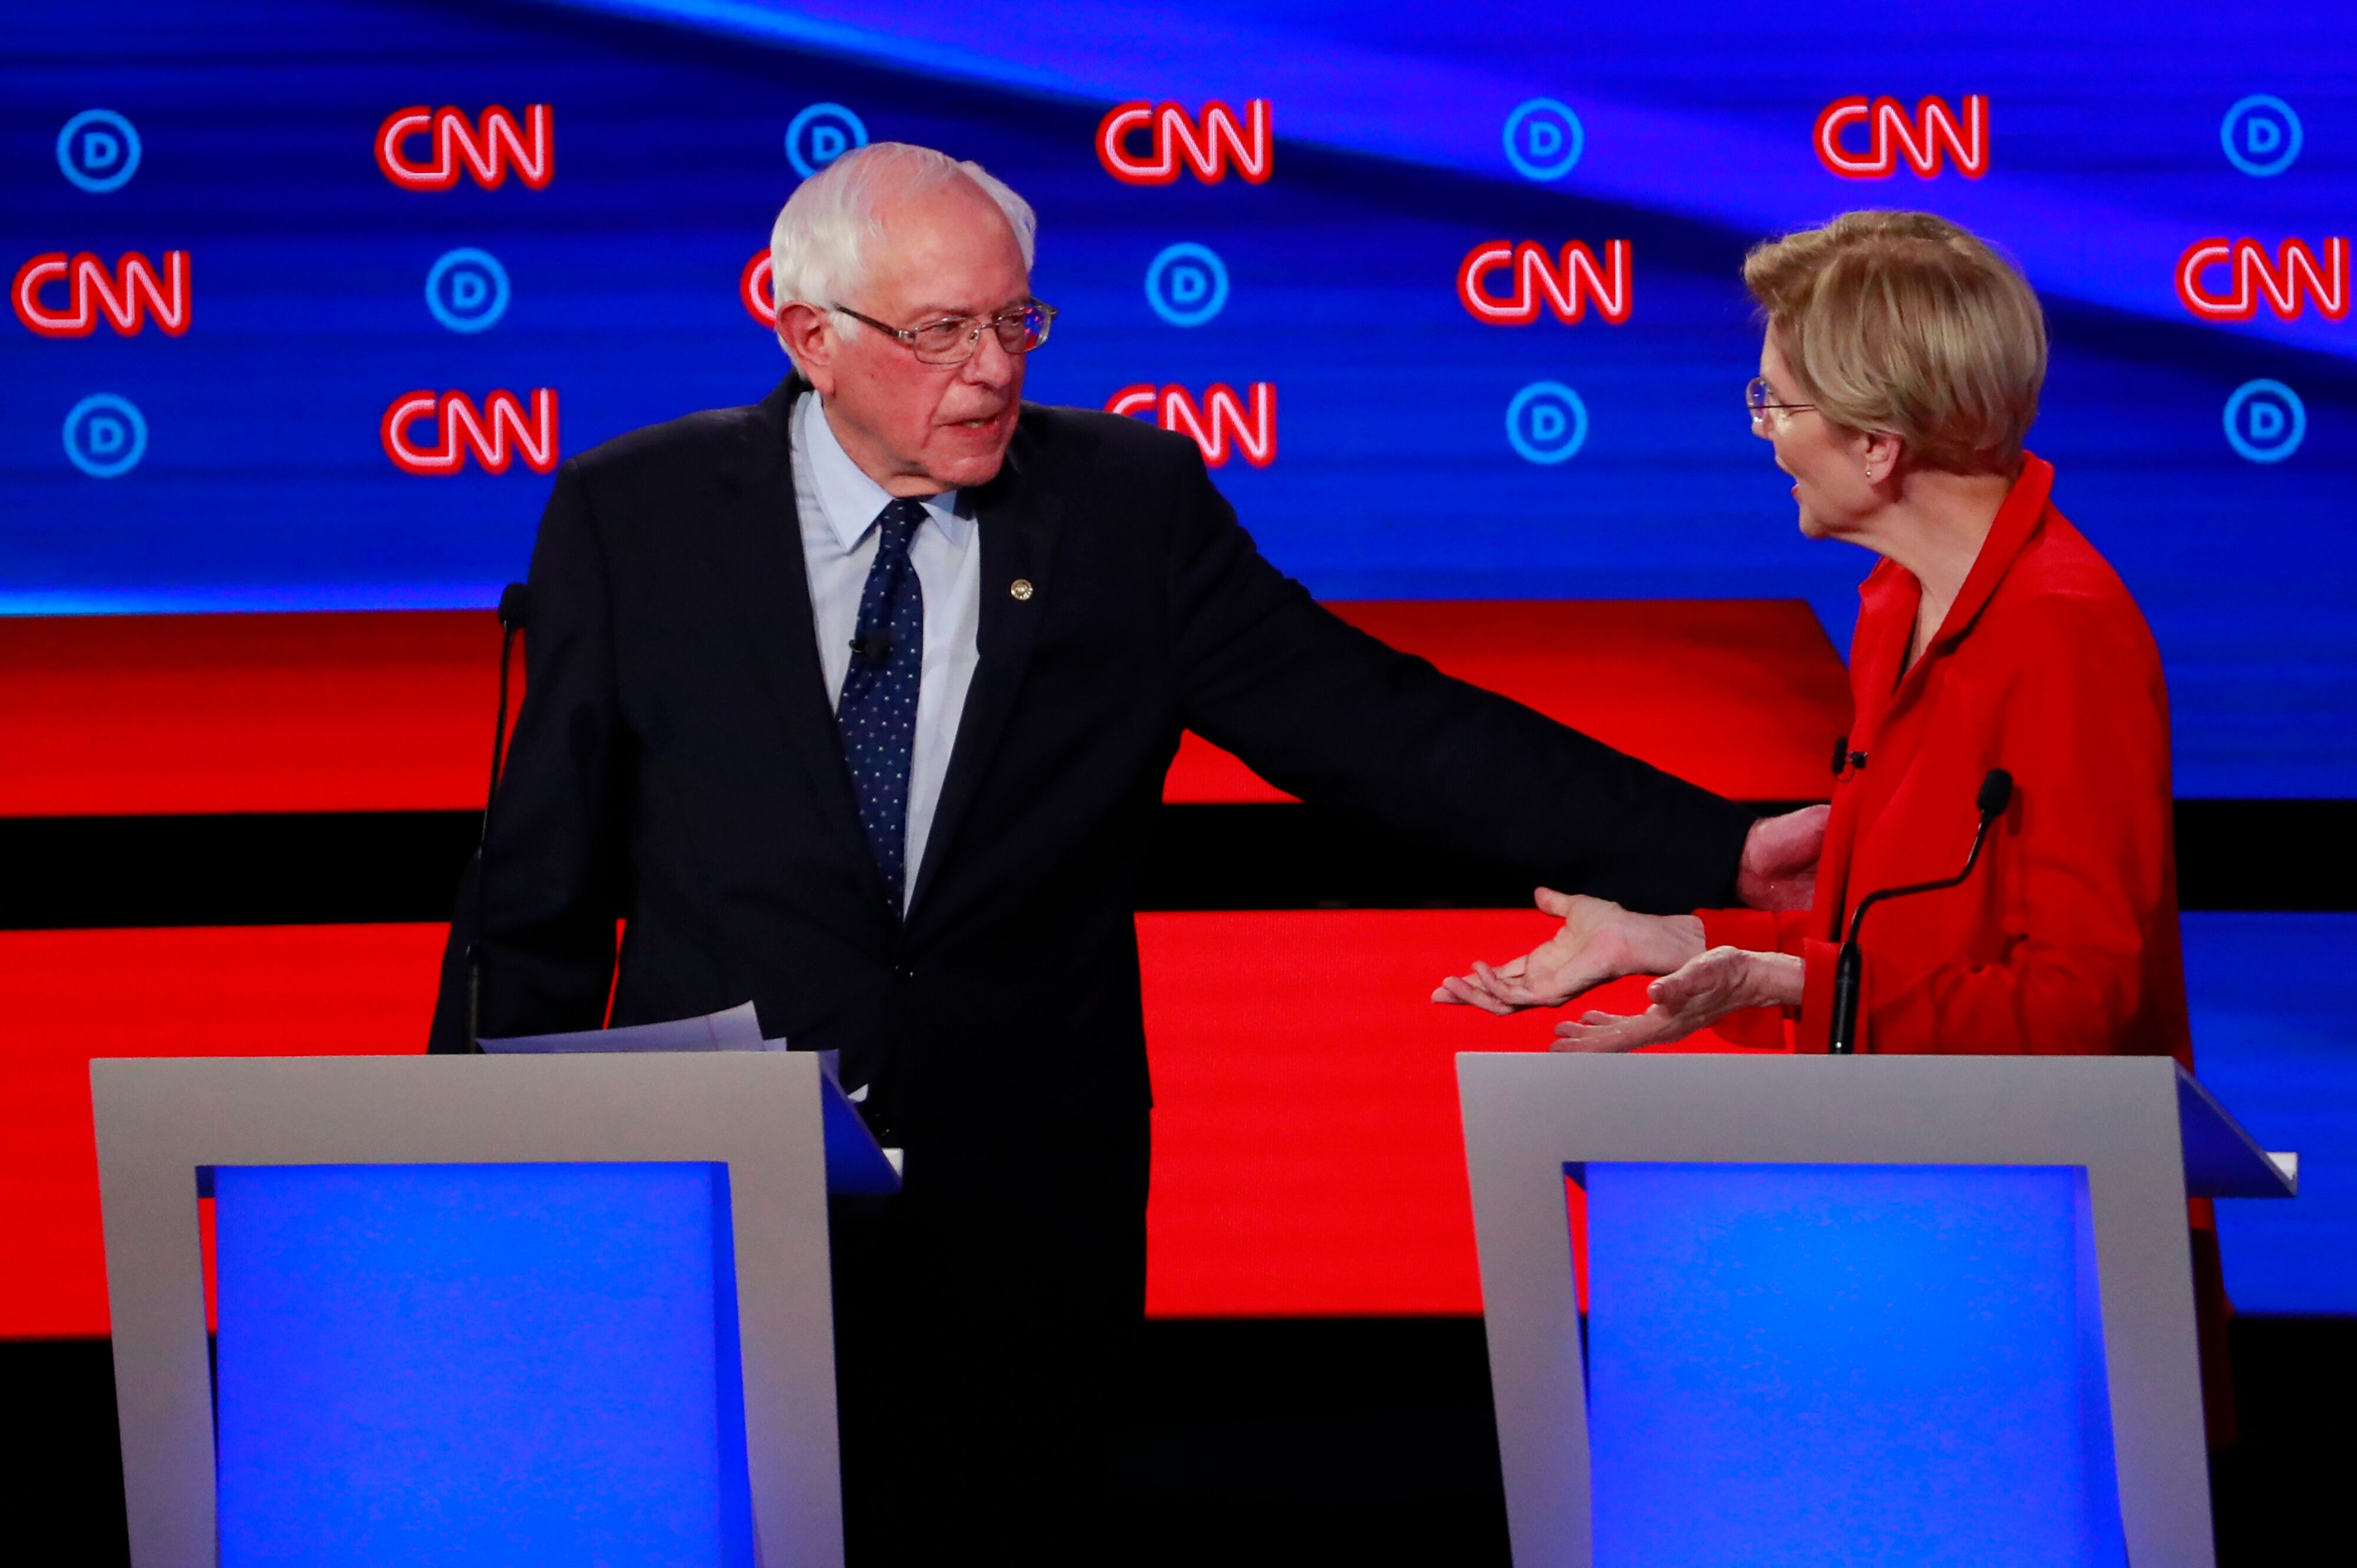 Bernie Sanders, left, greets Elizabeth Warren at the July 30 debate in Detroit, Michigan. The two candidates reportedly had a